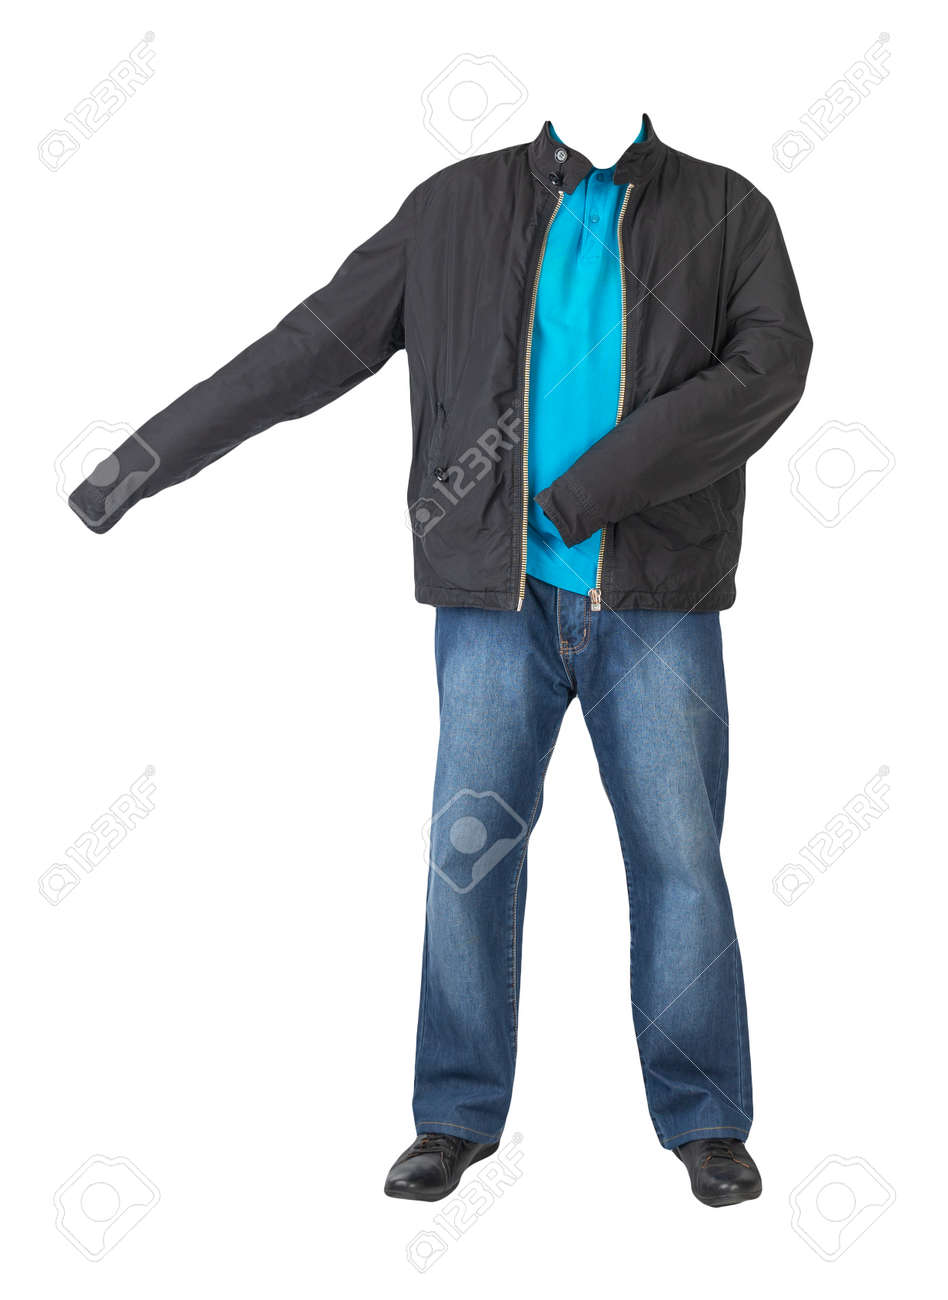 dark blue jeans, blue t-shirt with a collar on buttons, black jacket and black leather shoes isolated on white background - 172073767